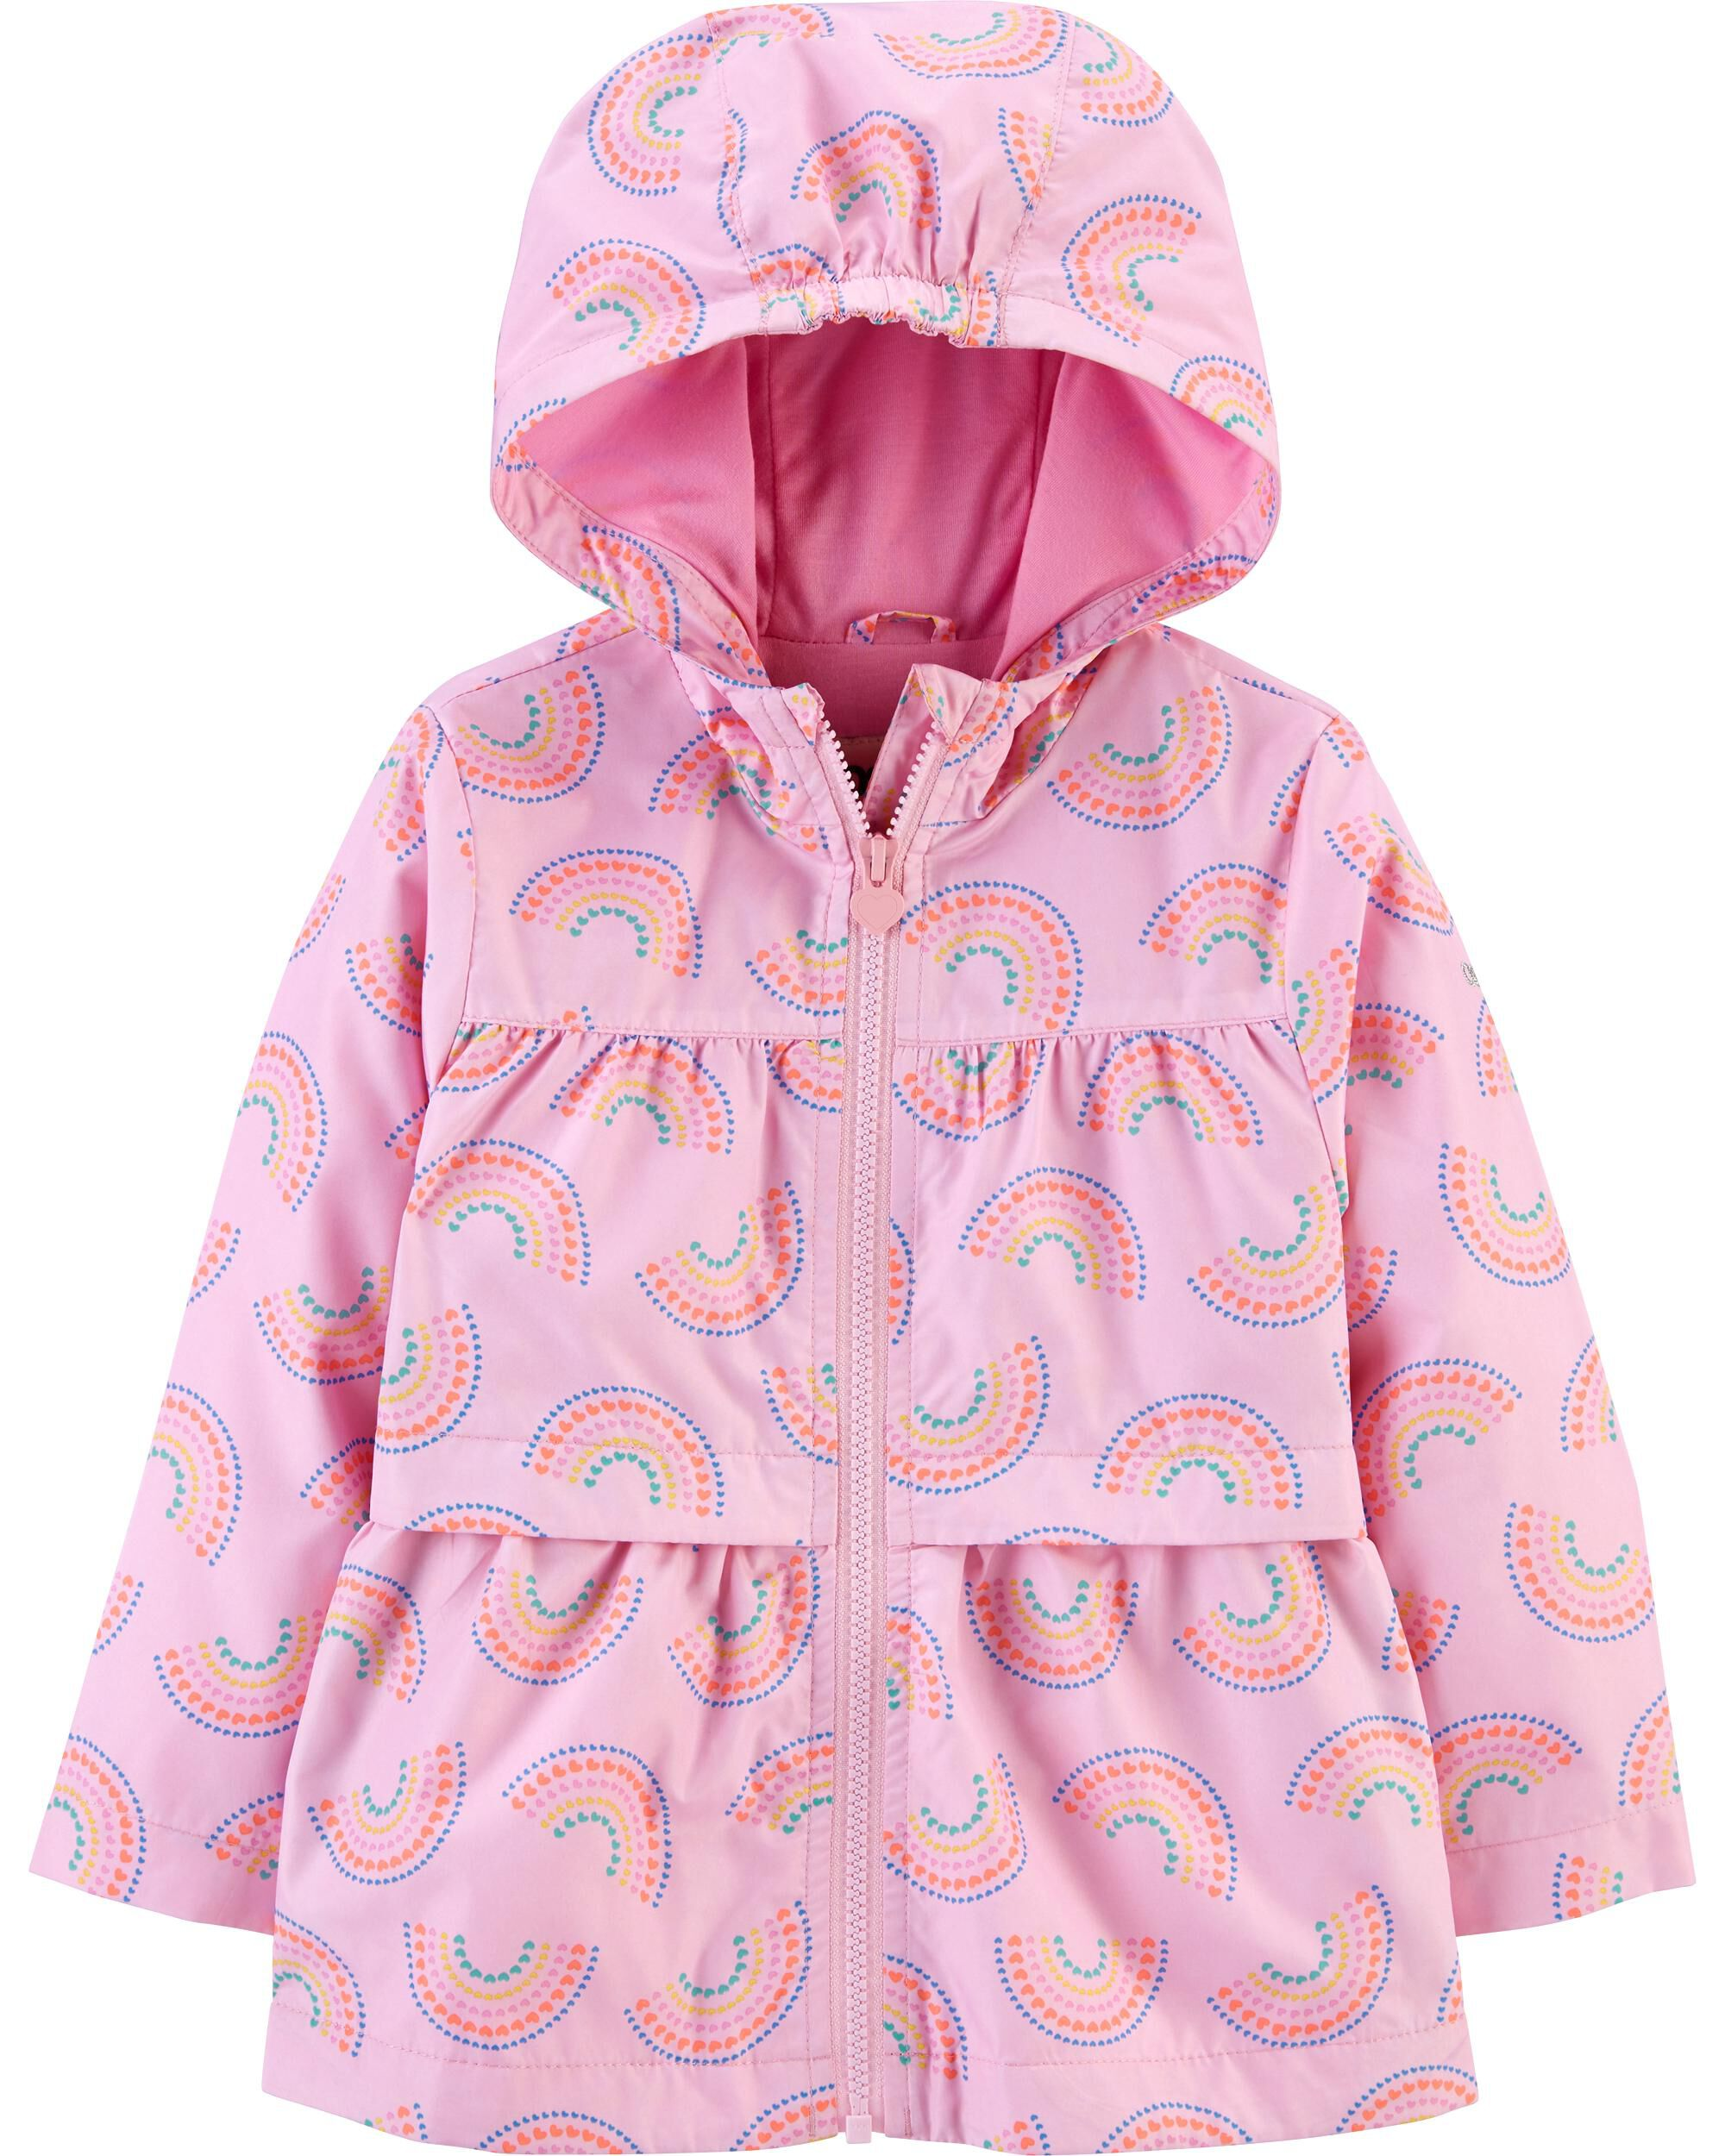 Osh Kosh B/'gosh Infant Girls Fuchsia 4 in 1 Outerwear Coat Size 12M 18M 24M